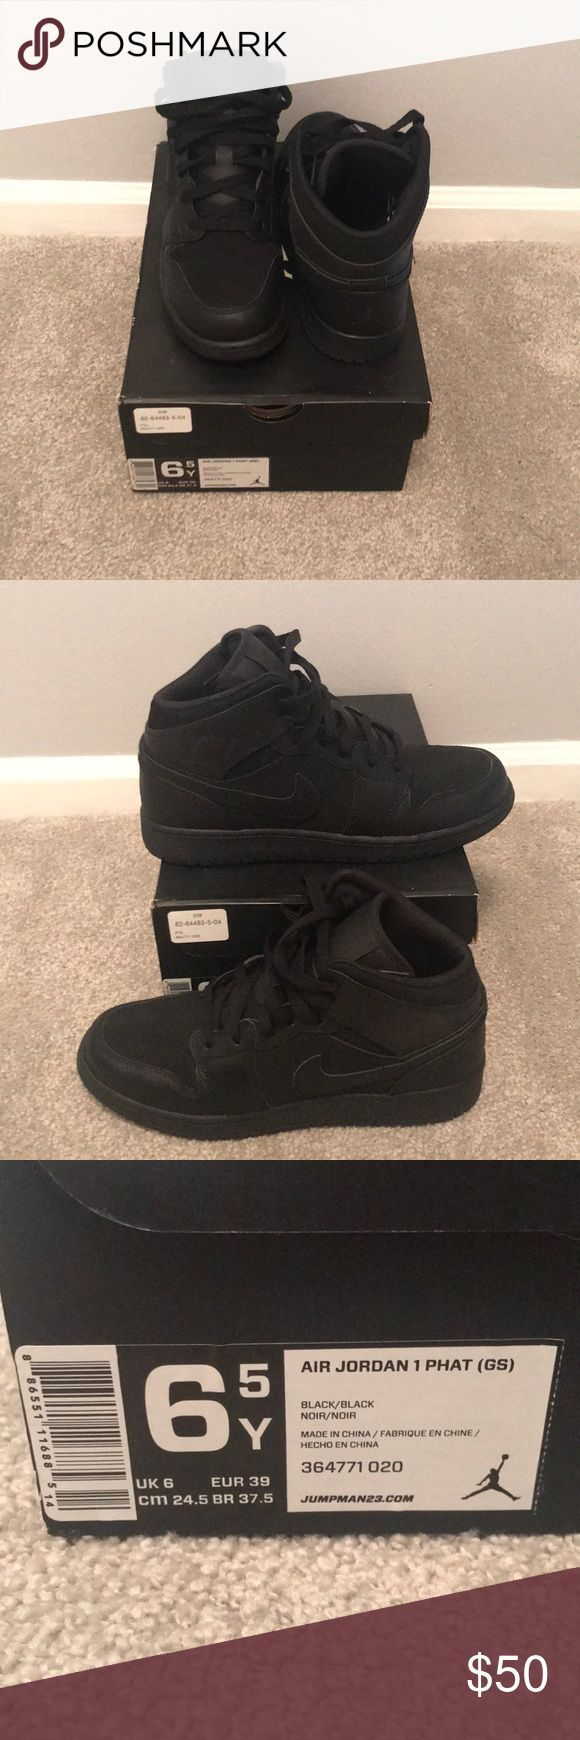 Brand new air Jordan 1 phat high top Brand new. Never worn! Kids 6.5 black air J - Jordan 1 Outfit Women - Ideas of Jordan 1 Outfit Women #jordanoutfit #womenjordan -   Brand new air Jordan 1 phat high top Brand new. Never worn! Kids 6.5 black air Jordan 1 phat high top nike!!!! If youre a women size 8 you can fit into these perfect! Never worn!!!! Nike Shoes Sneakers #airjordan1outfitwomen